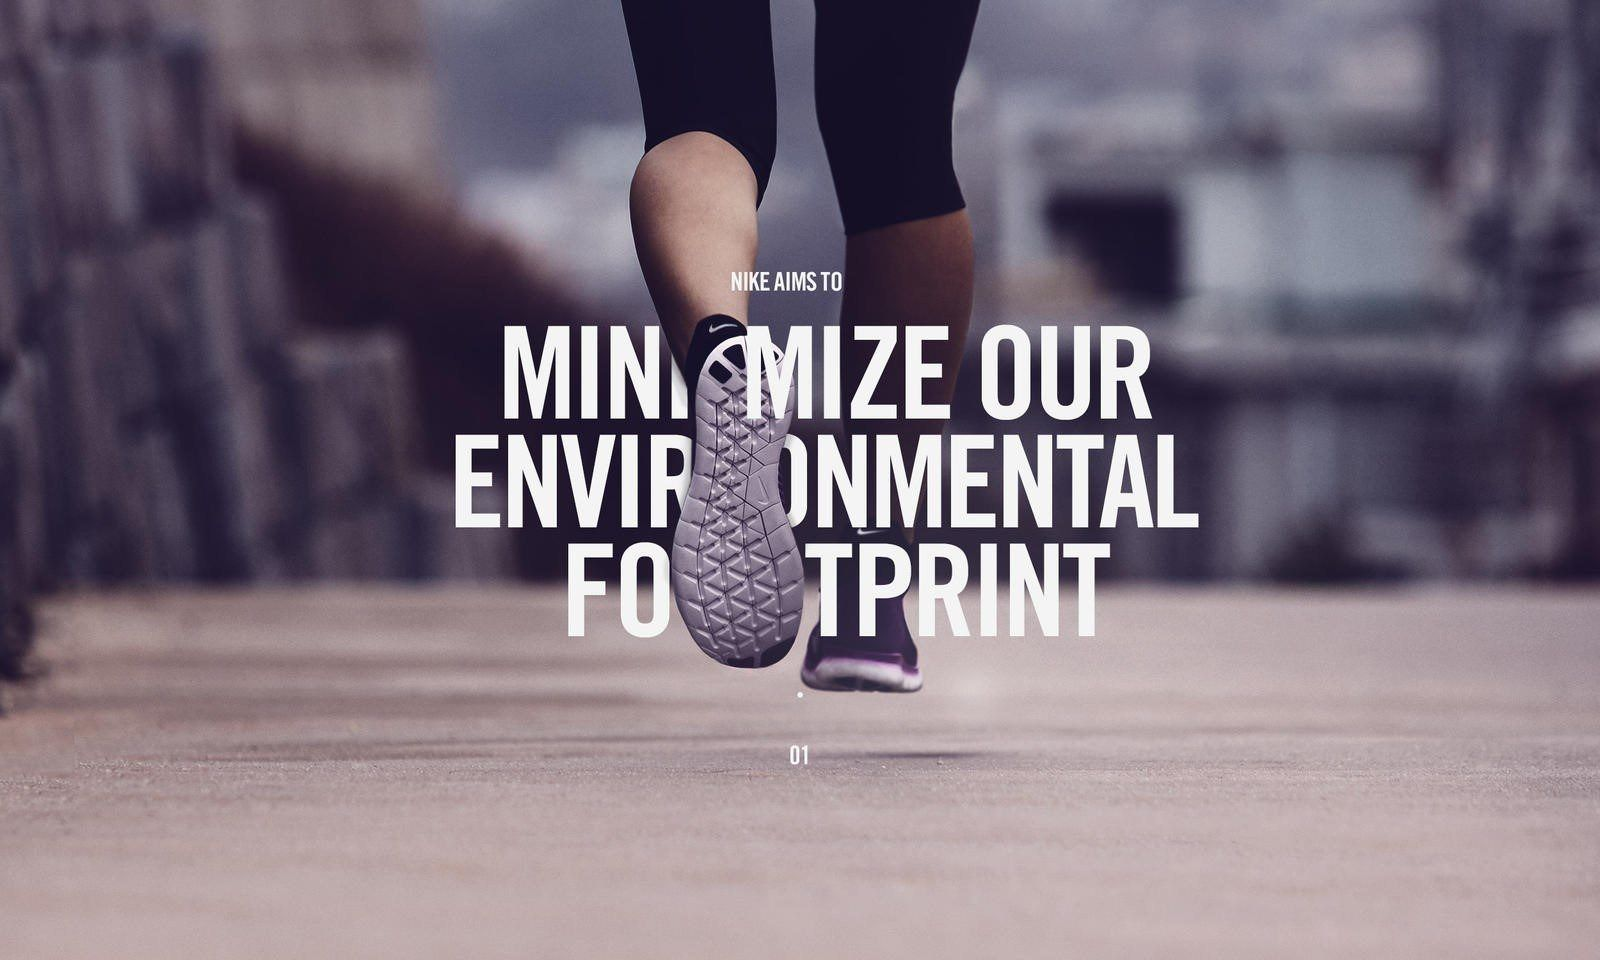 Nike Environmental Footprint